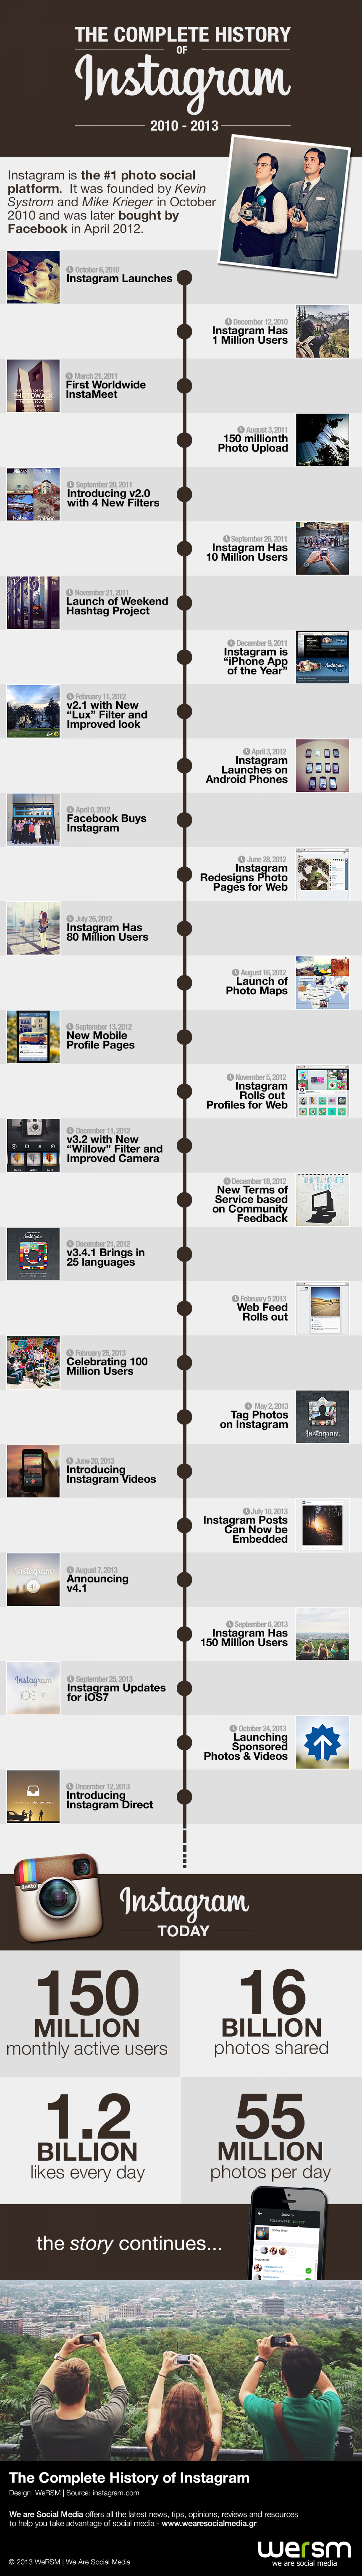 The Complete History Of Instagram Infographic